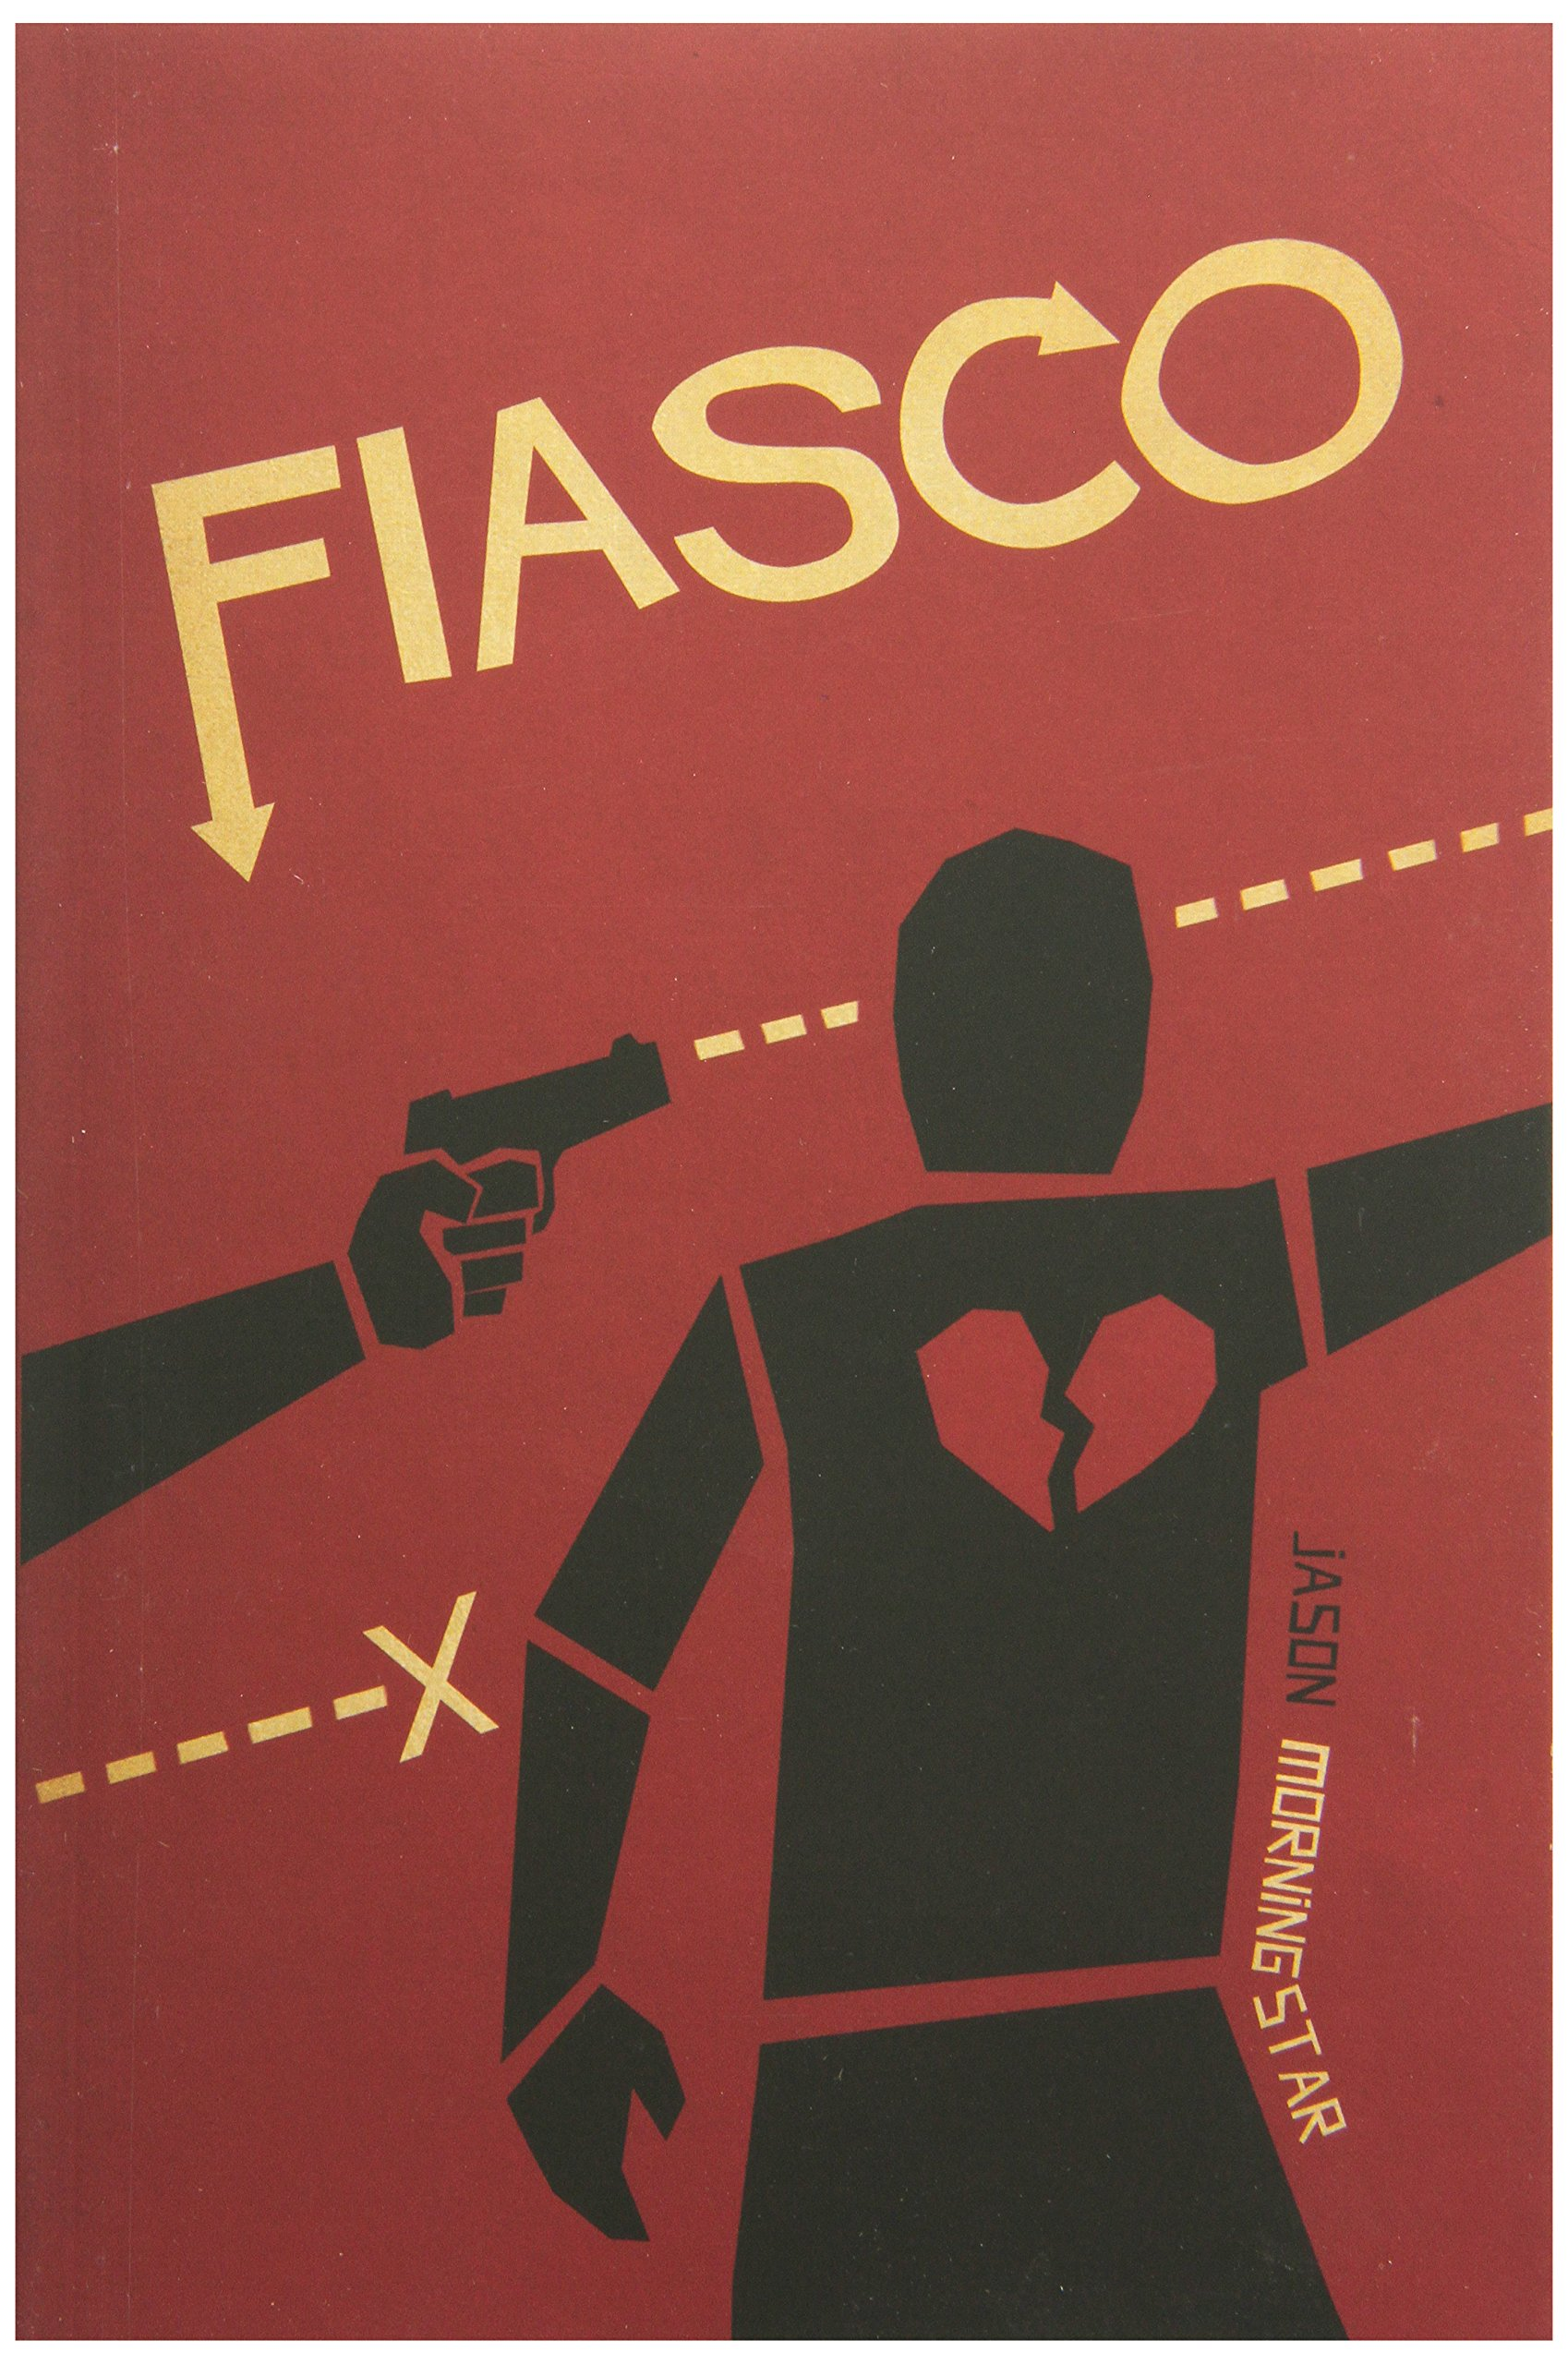 Fiasco Role Playing Game by Bully Pulpit Games